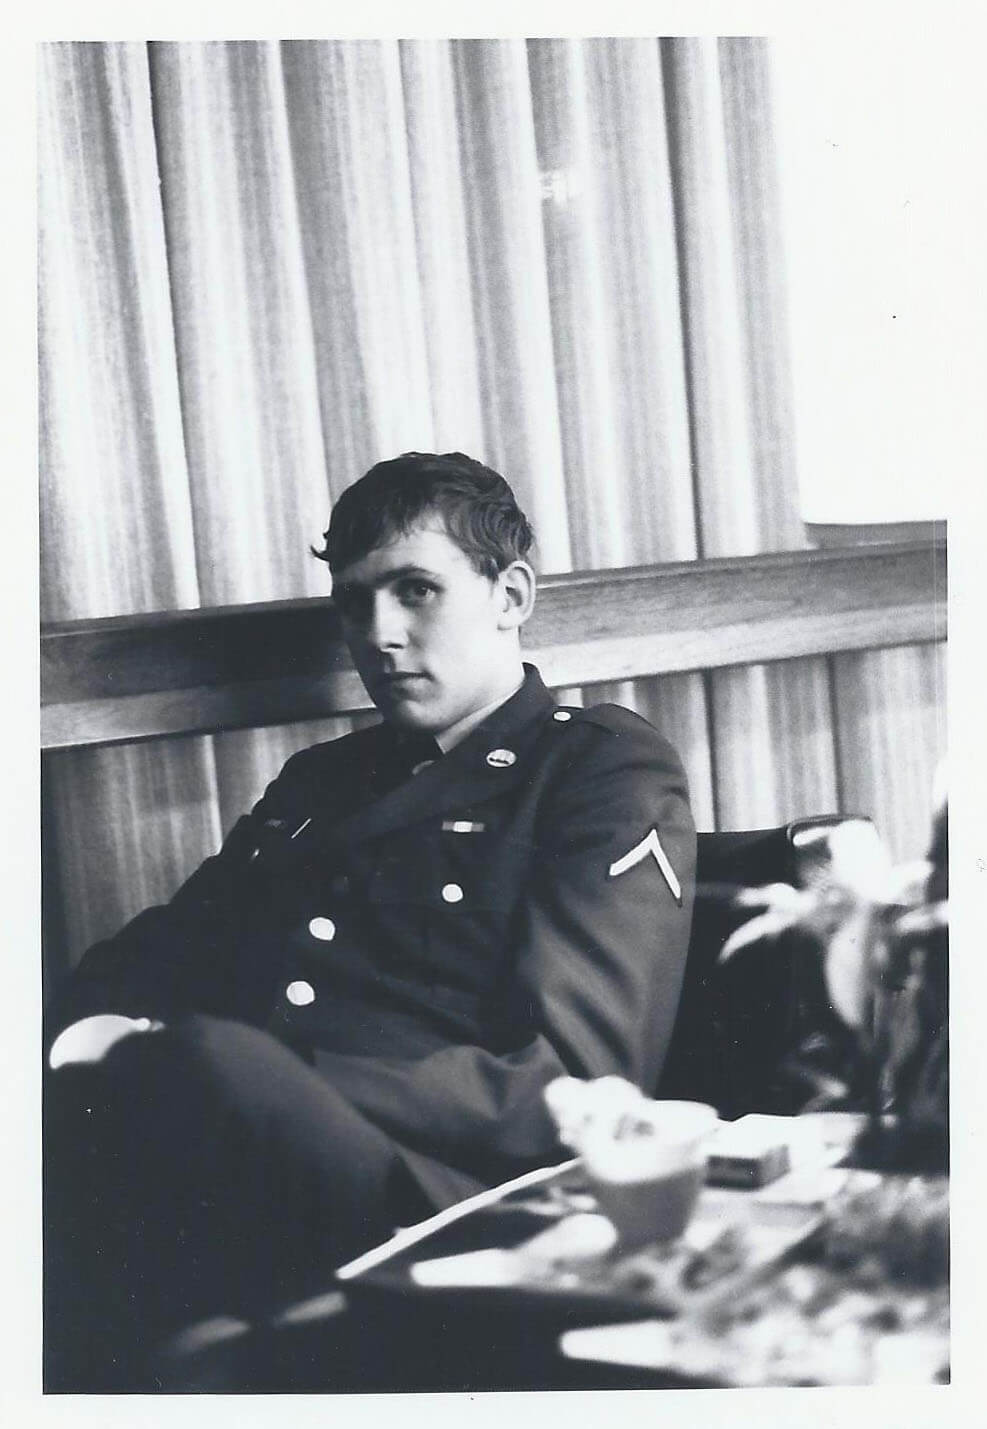 A young, sad-looking soldier looks into the camera.